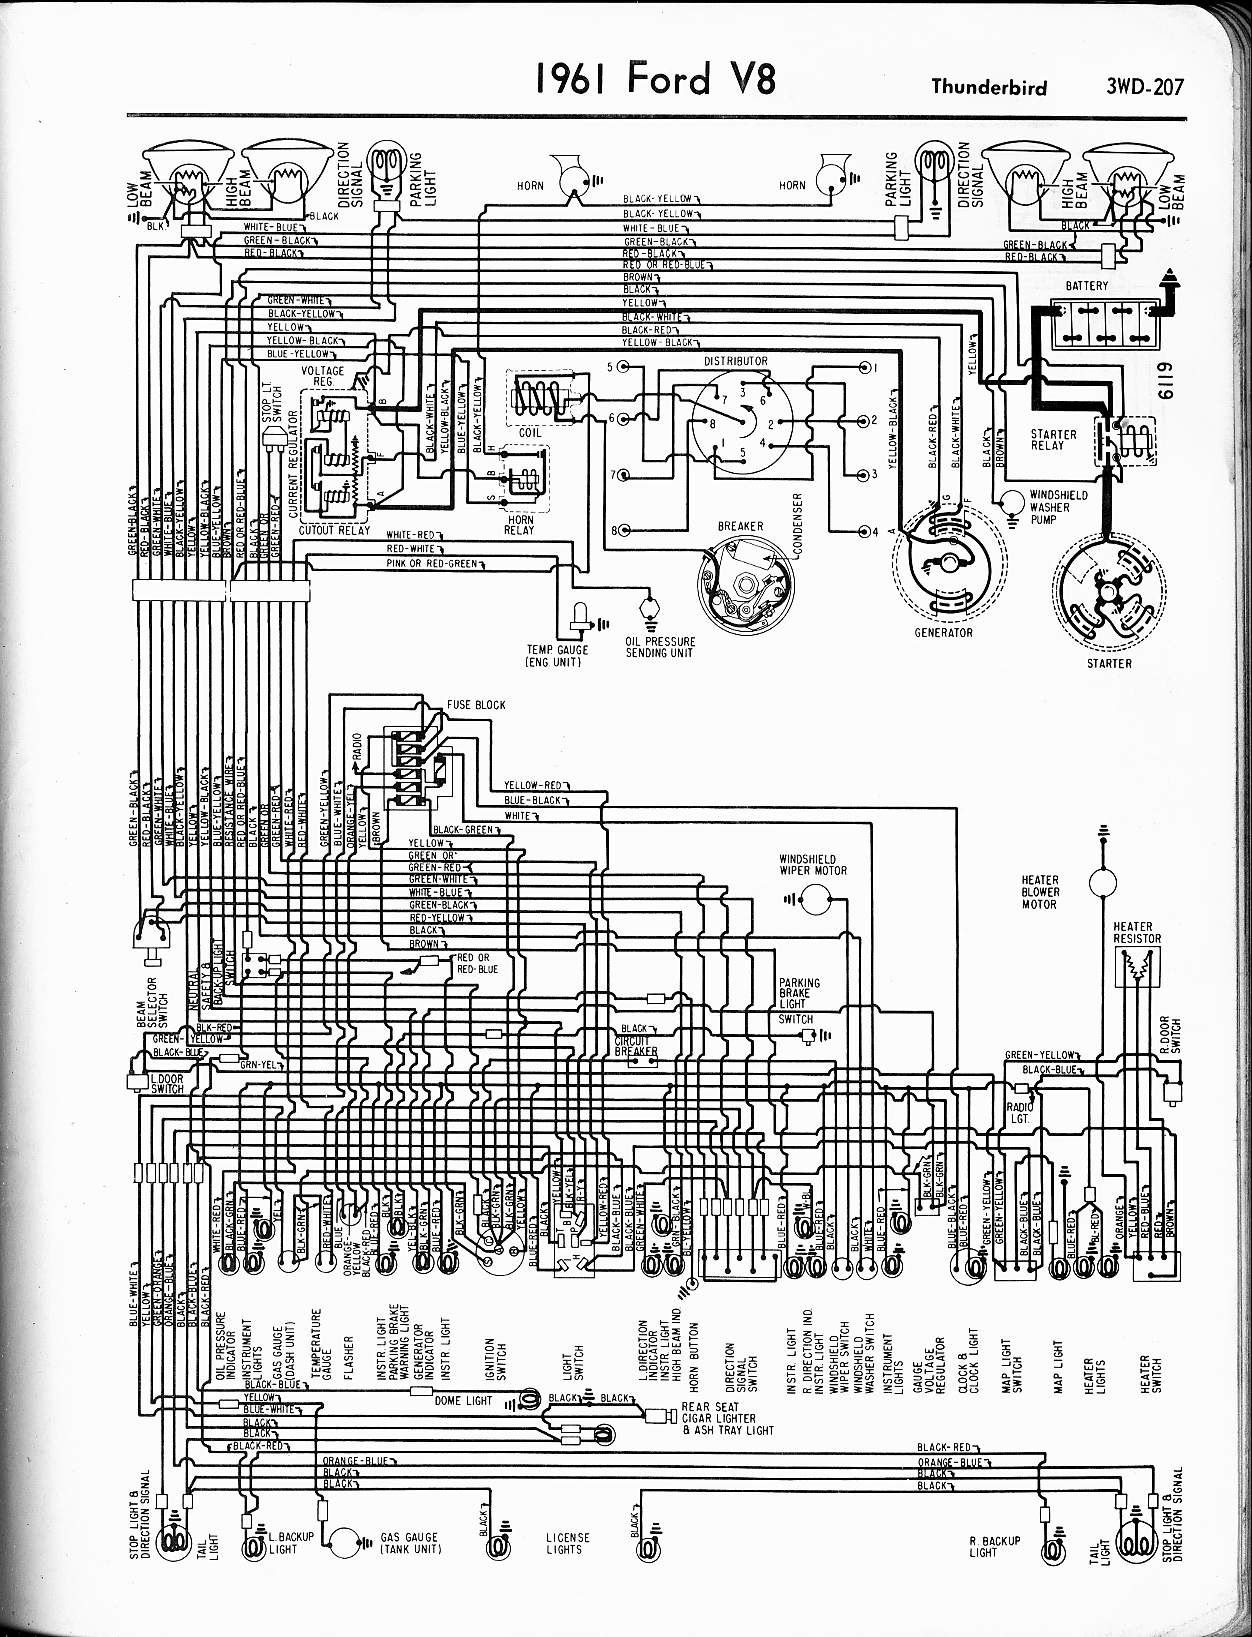 1961 ford wiring diagram wiring data diagram rh 8 meditativ wandern de